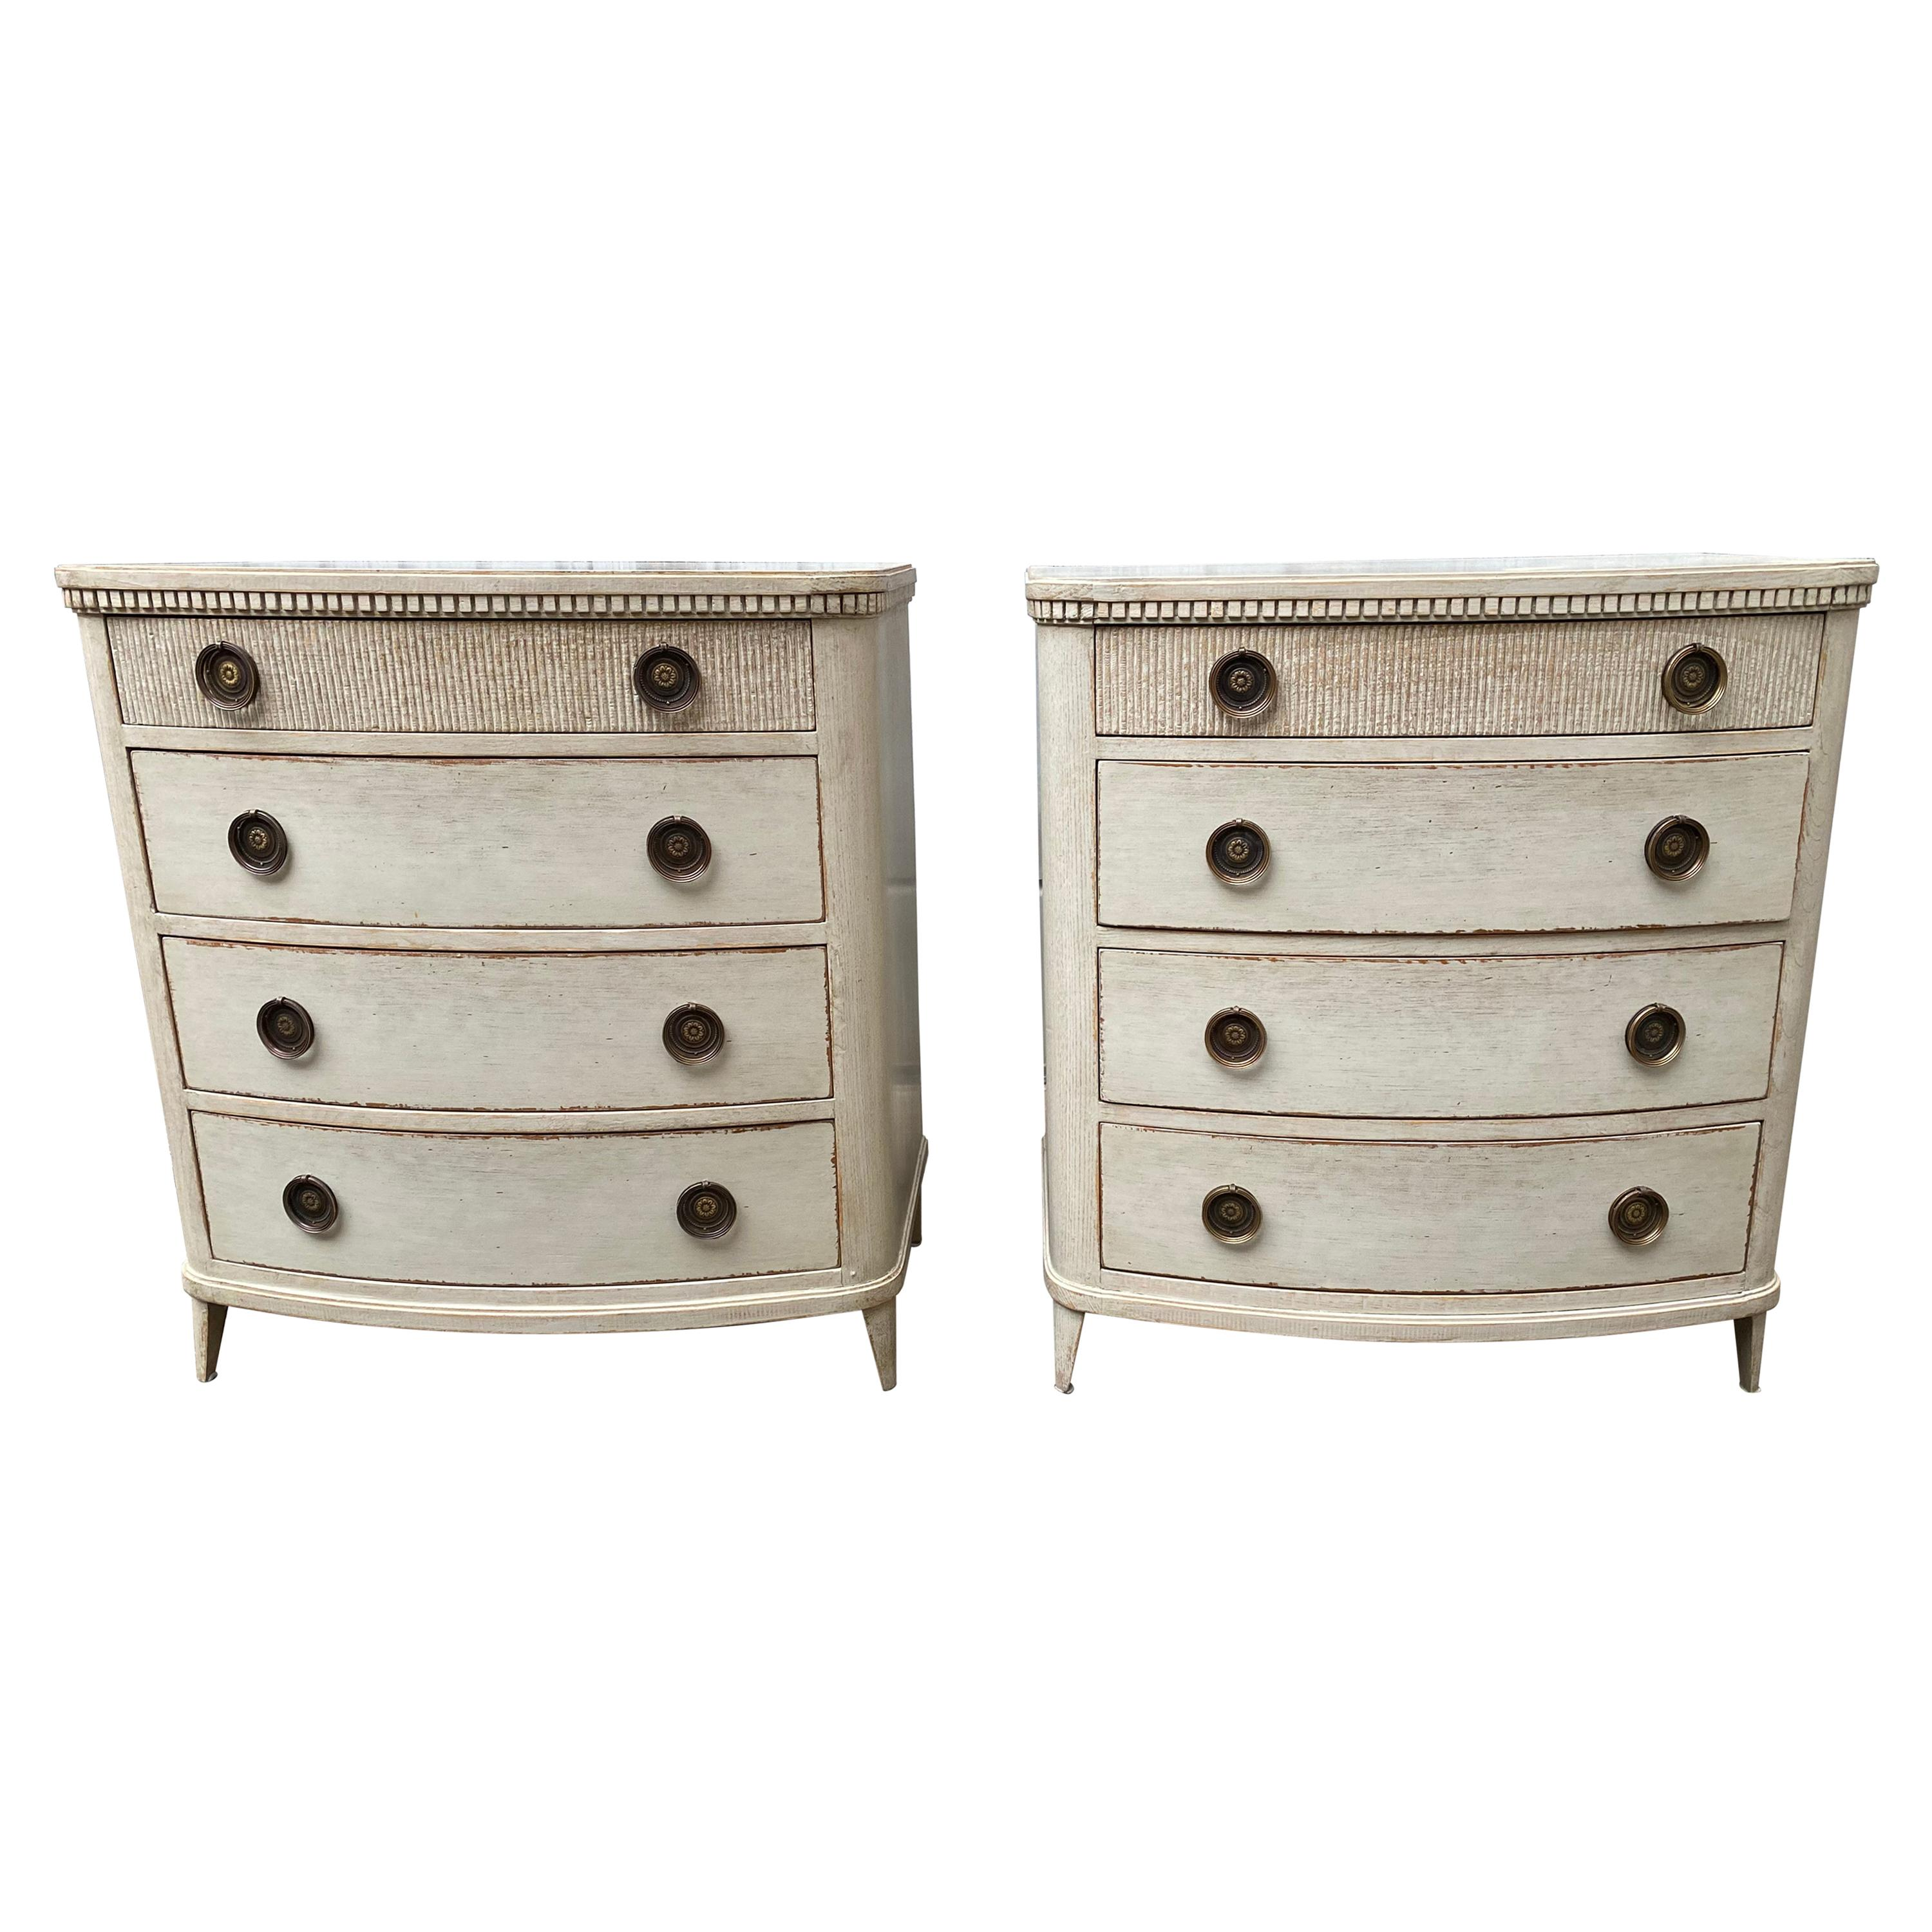 Pair of Swedish 19th Century Painted Chest of Drawers